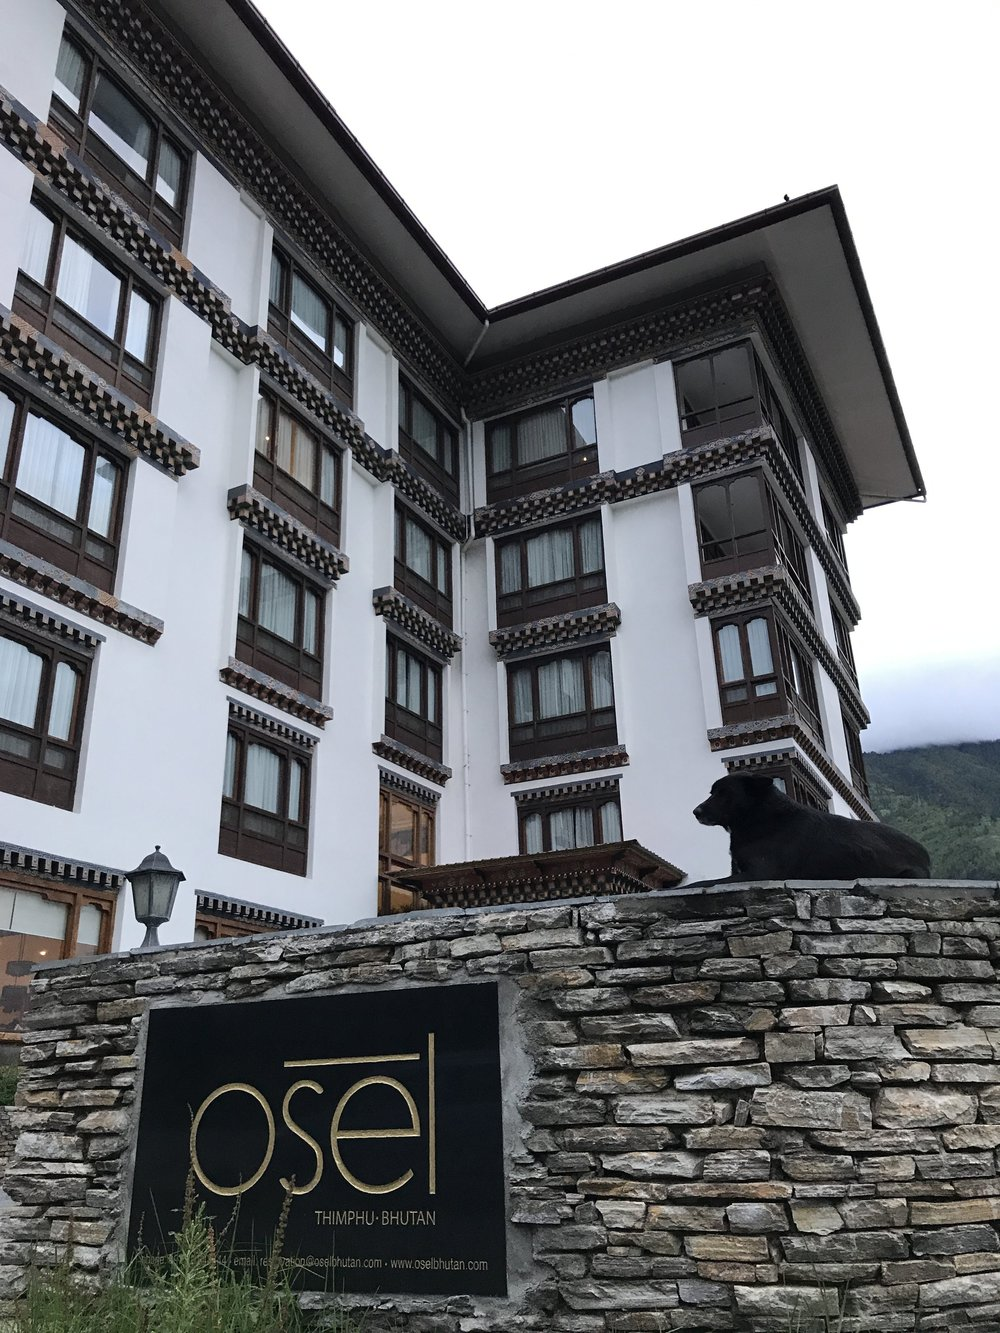 Osel Hotel - Not a bad choice in Thimphu